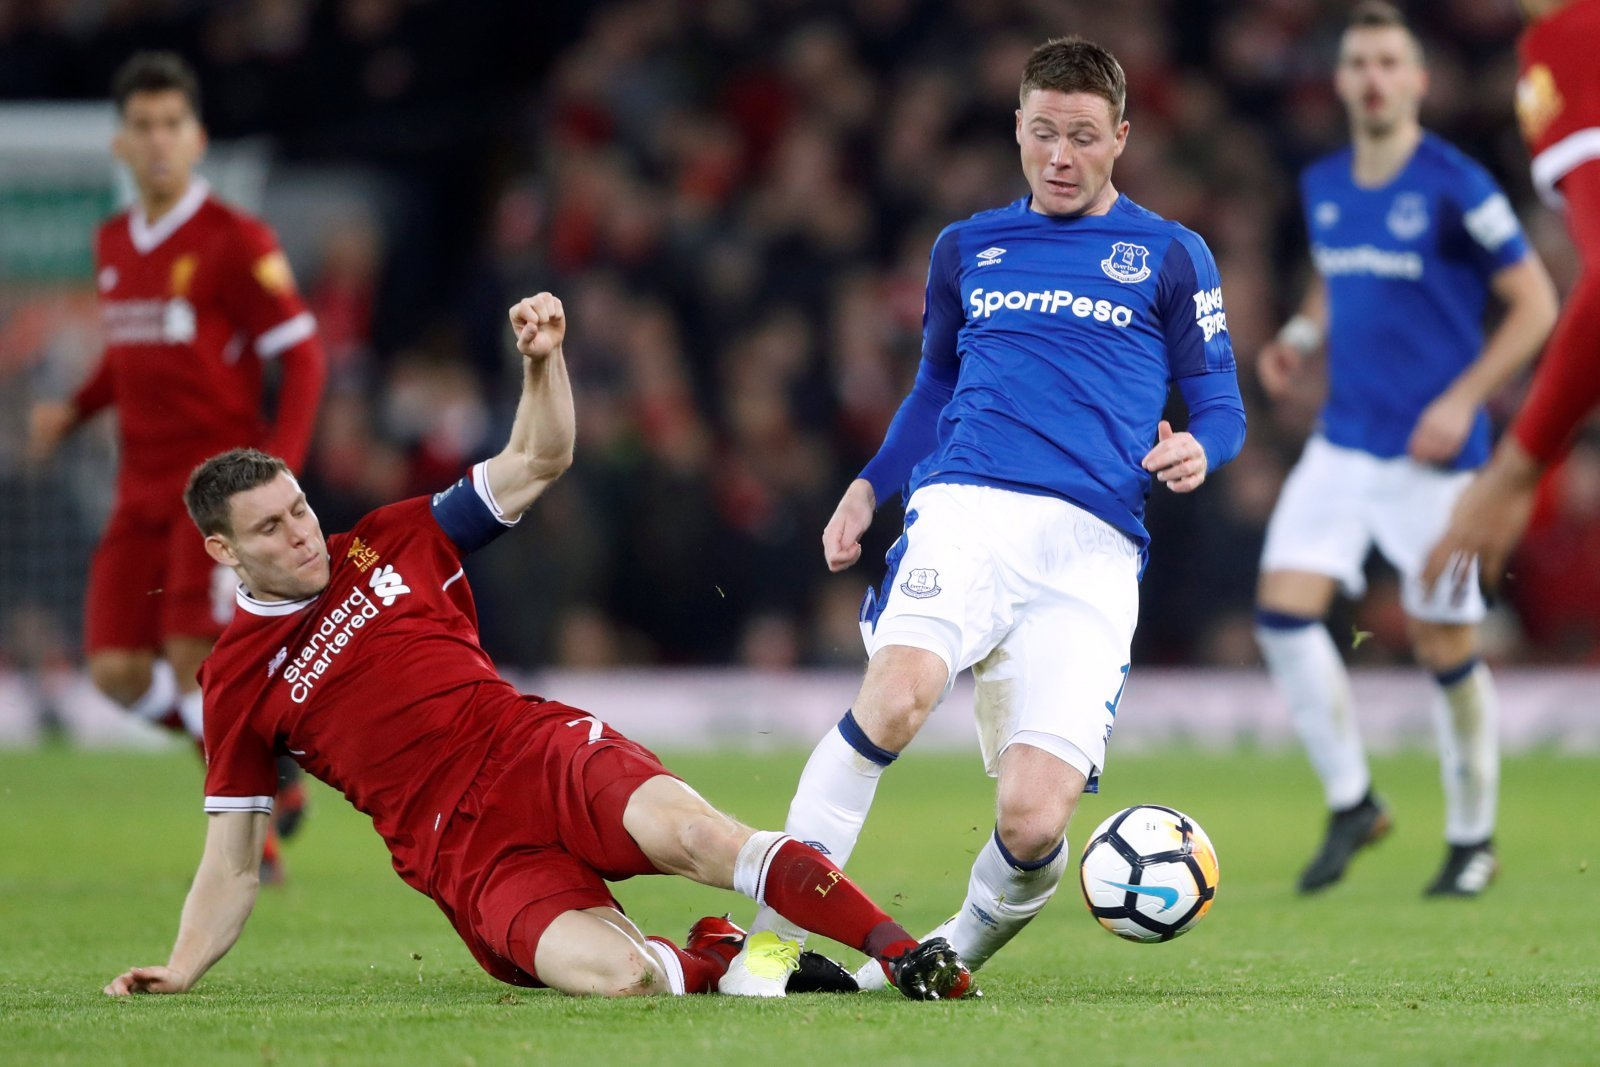 Everton: James McCarthy allowed to leave